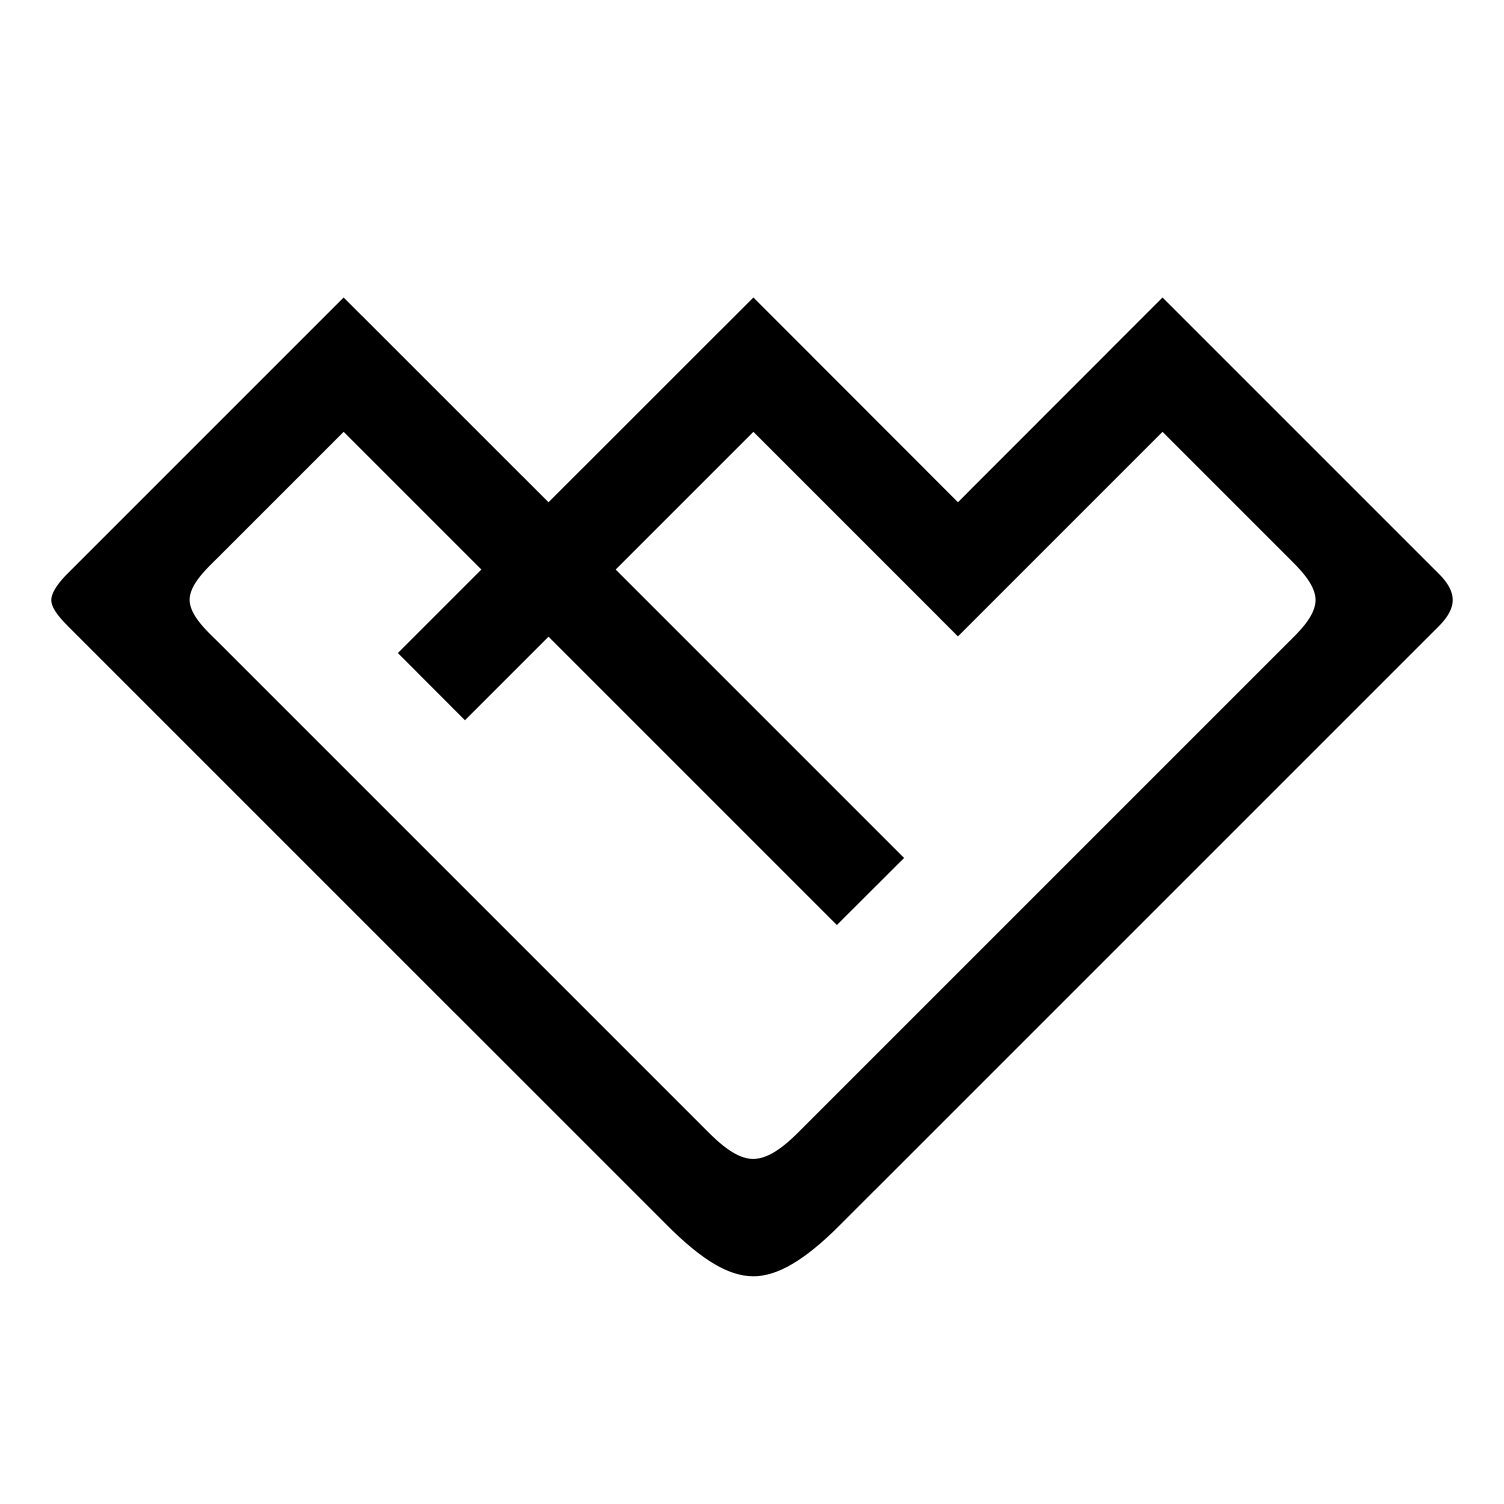 The-Collective-logo-icon-noborder-Black-CROP.png